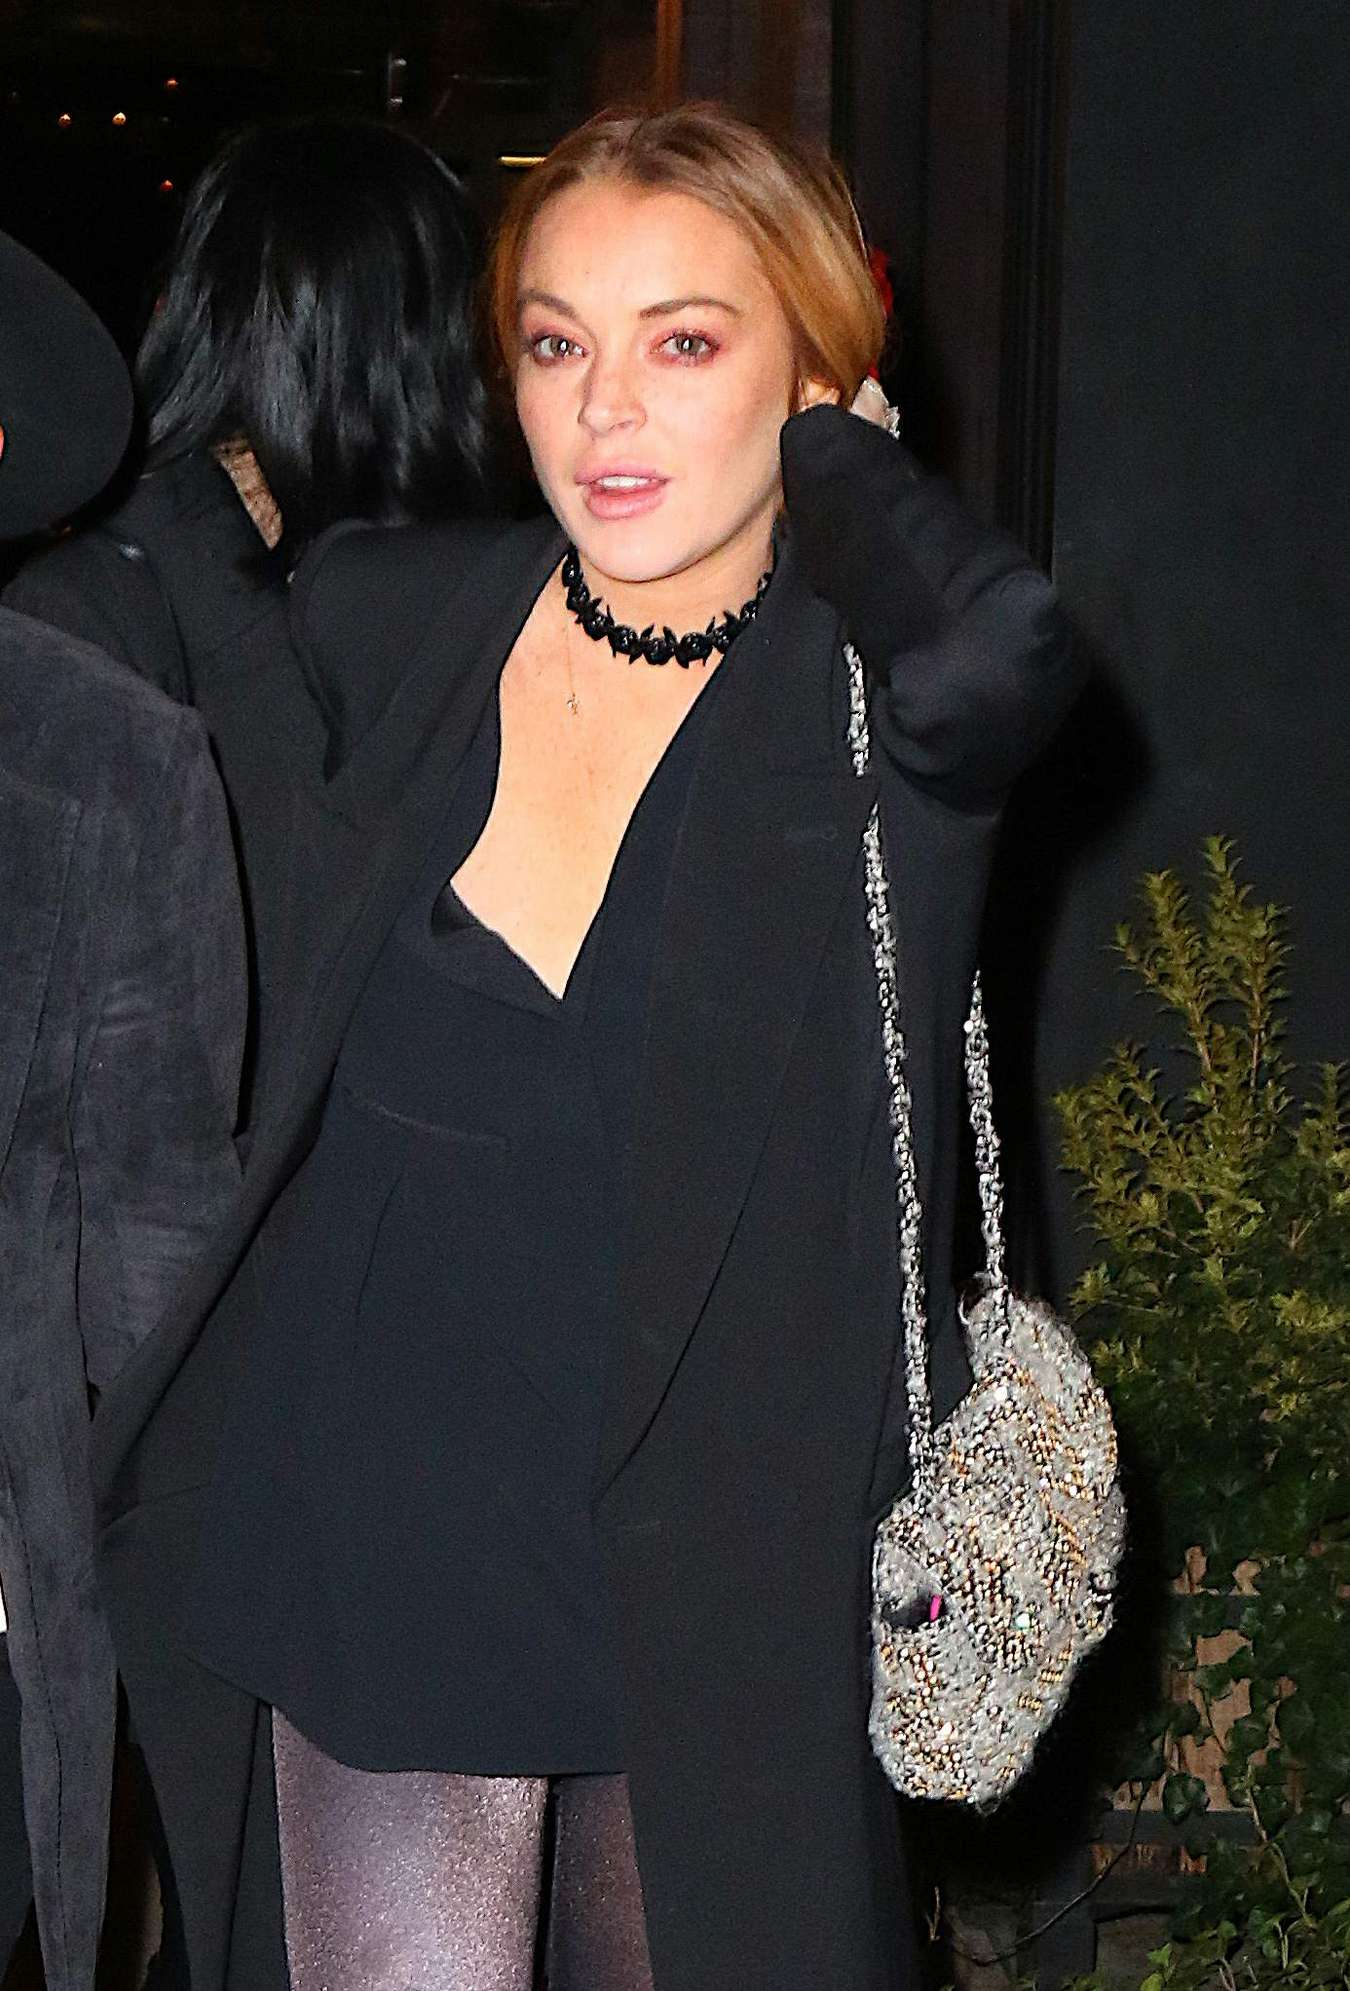 Lindsay Lohan - Night out in New York City